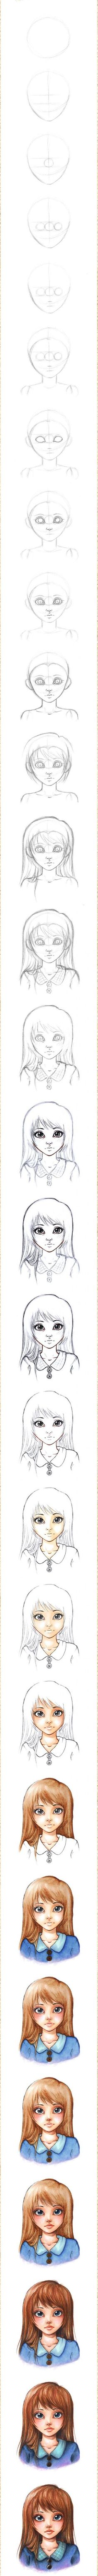 How to draw girls faces, drawing girl face, drawing lesson Drawing Lessons, Drawing Techniques, Drawing Eyes, Painting & Drawing, Drawing Hair, Sketch Drawing, Drawing People, Drawing Girls, Art Tips